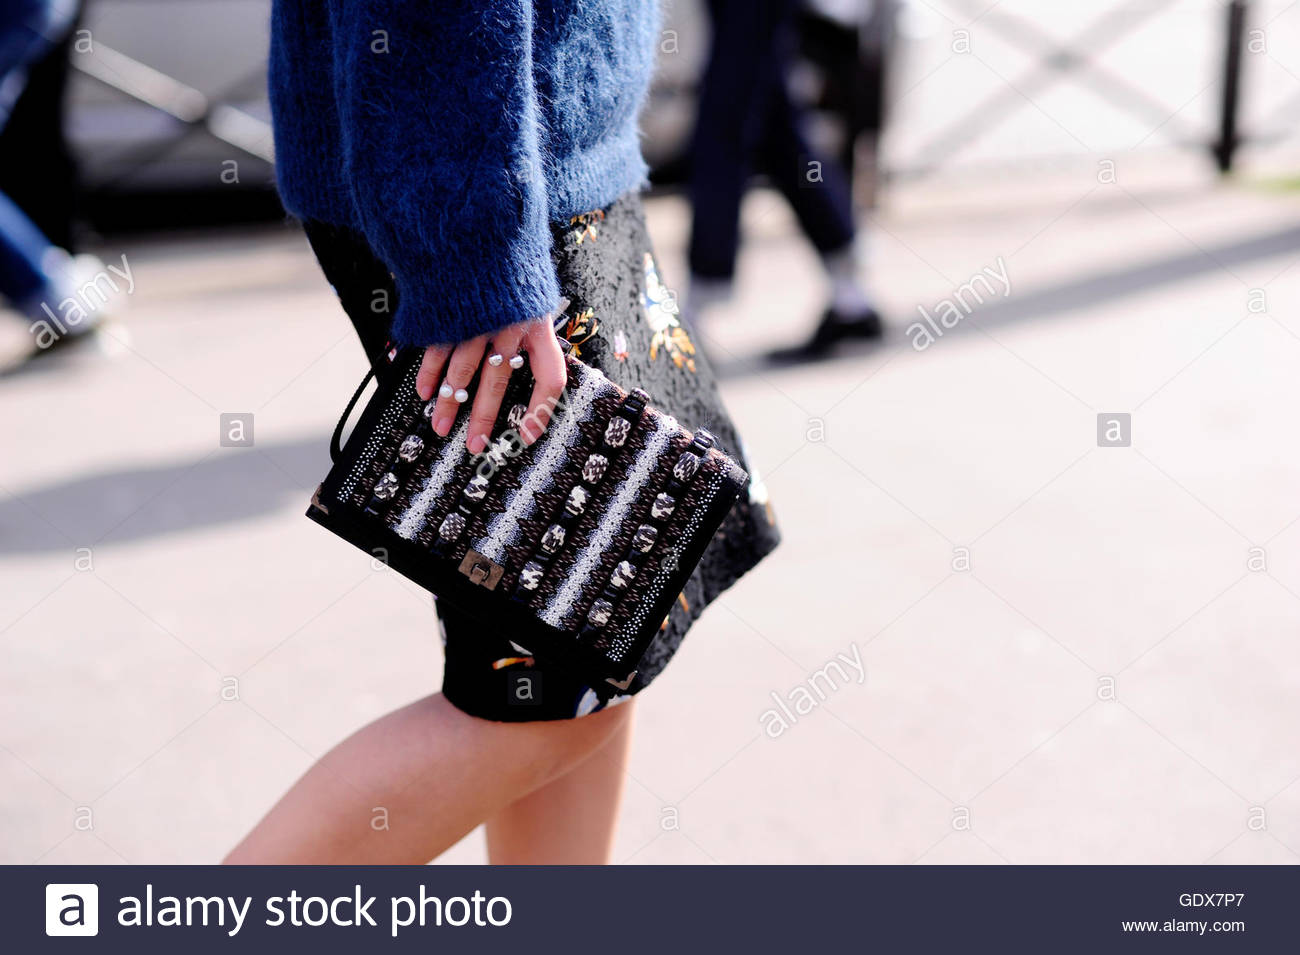 Detail of a woman with Clutch during Paris Fashion Week. - Stock Image